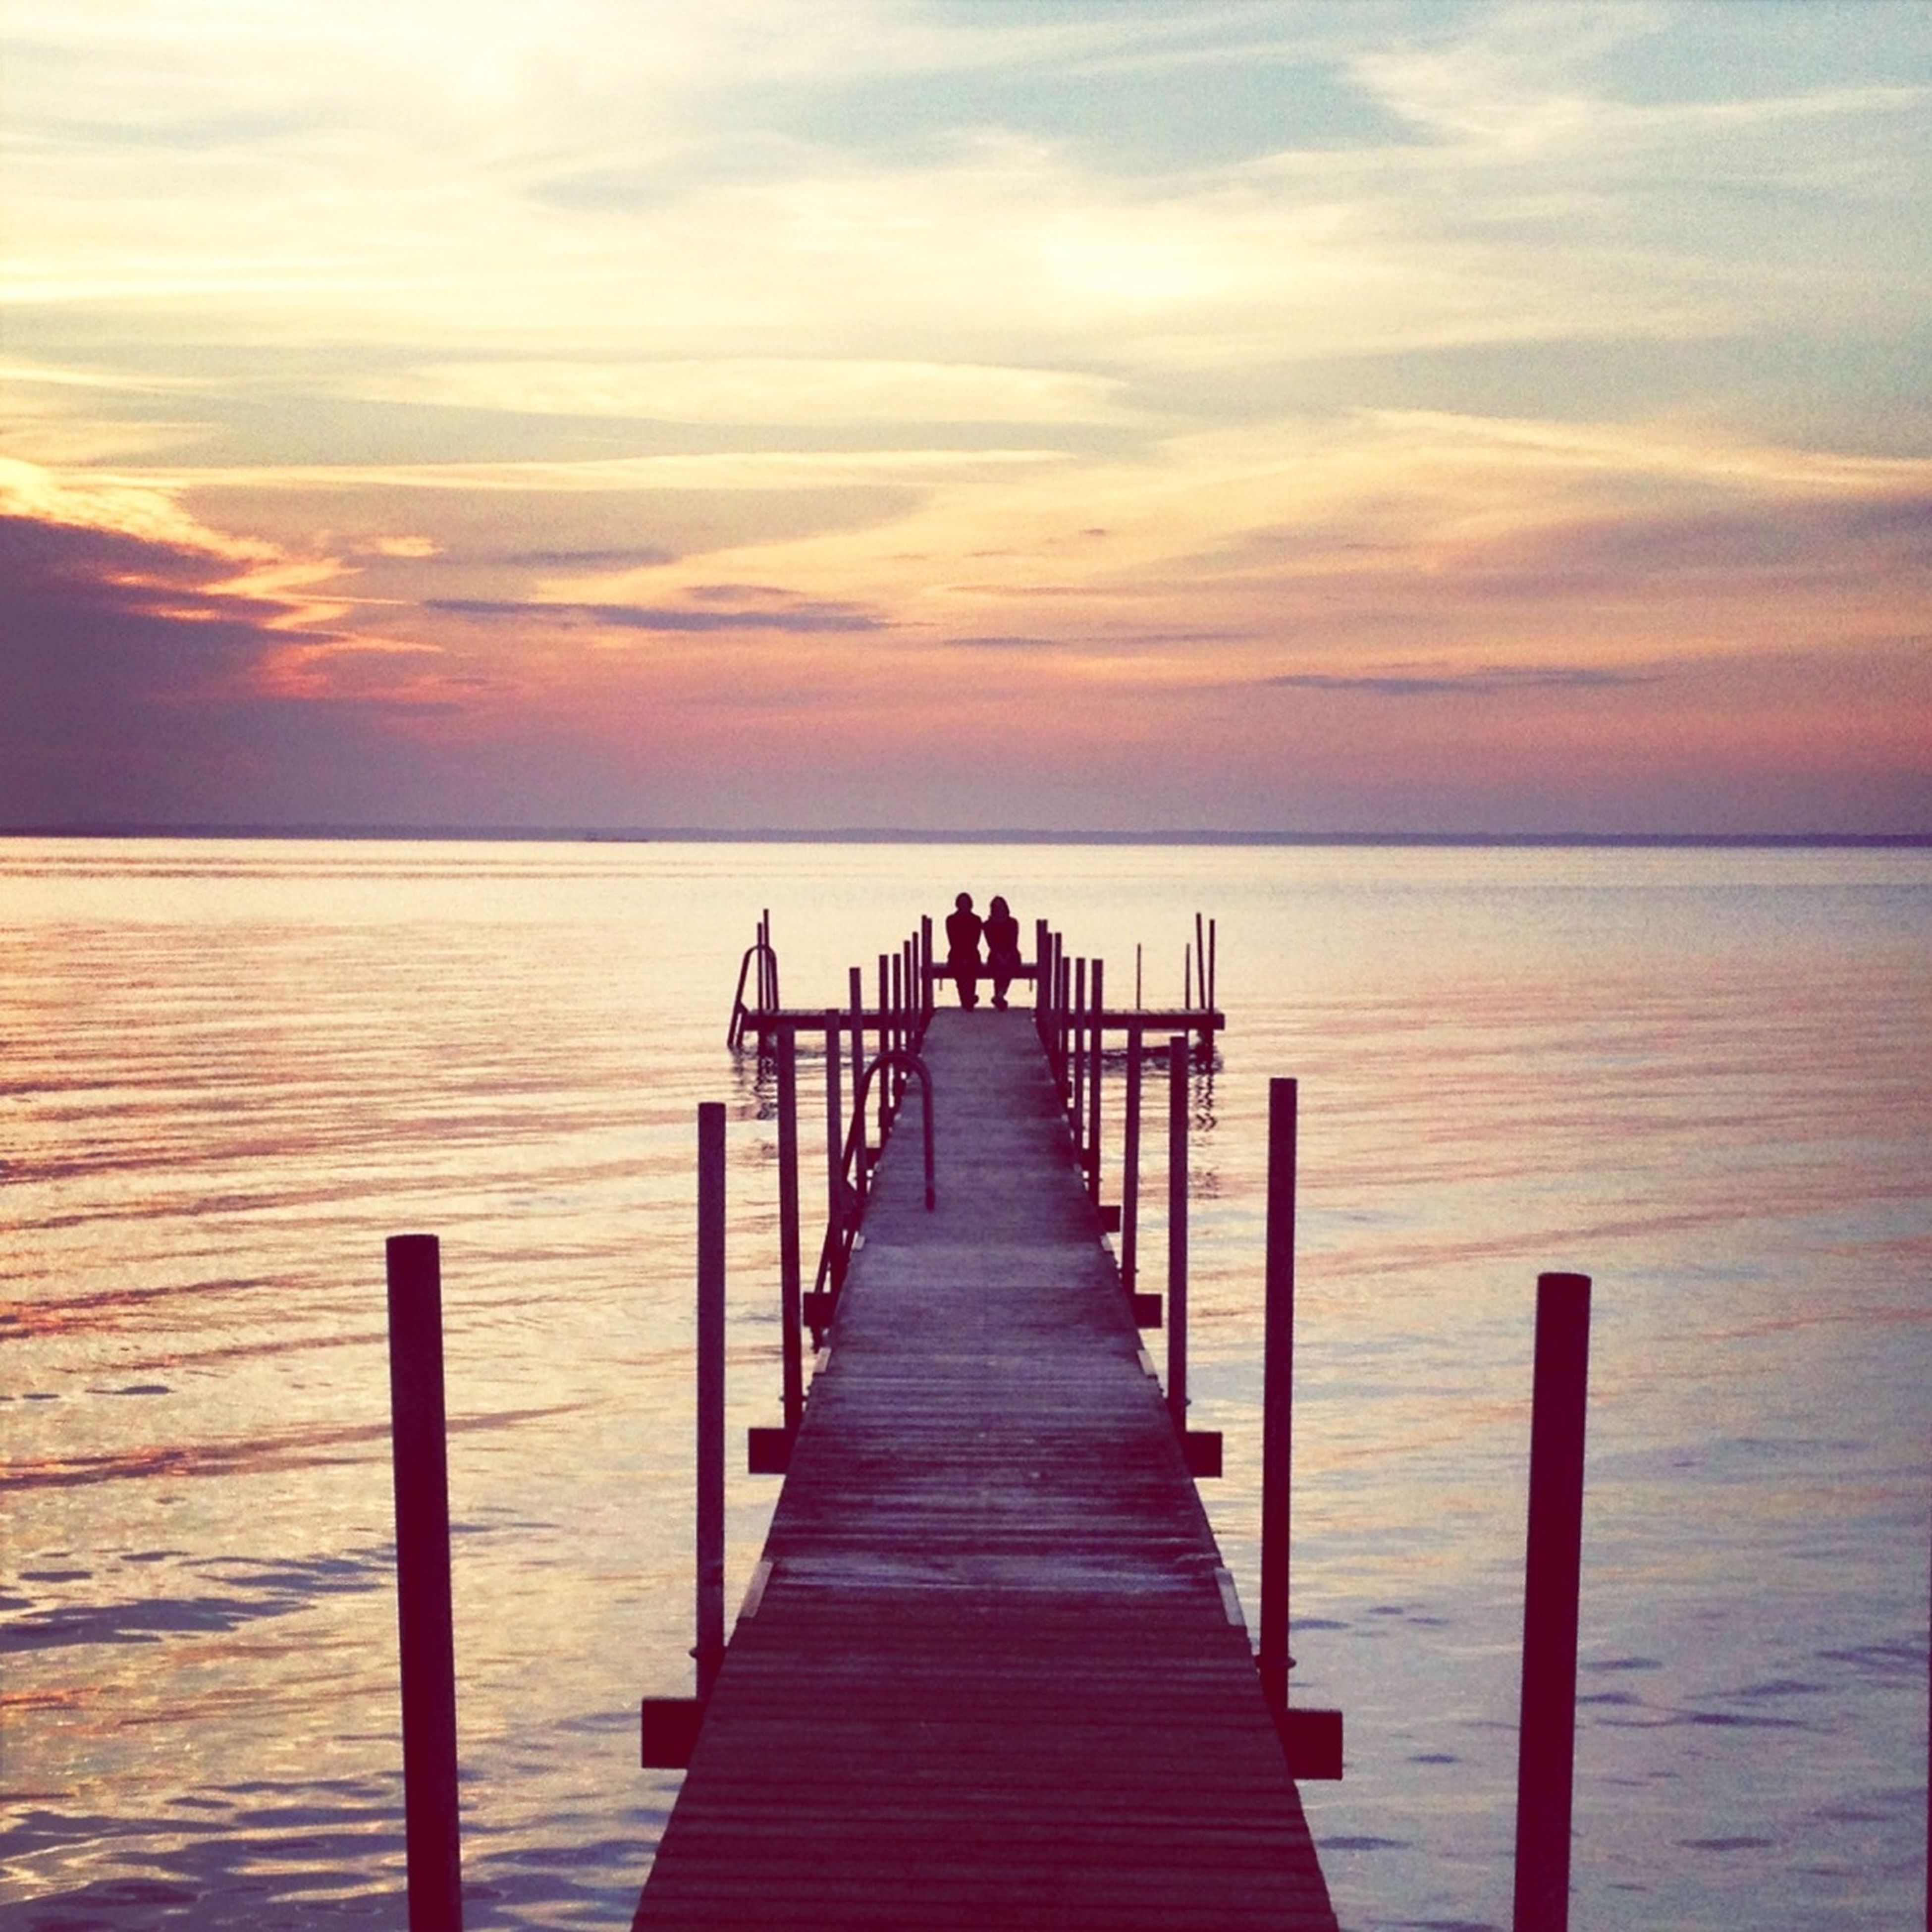 pier, sea, water, tranquil scene, sky, tranquility, horizon over water, scenics, the way forward, wood - material, sunset, beauty in nature, jetty, nature, railing, idyllic, cloud - sky, diminishing perspective, long, boardwalk